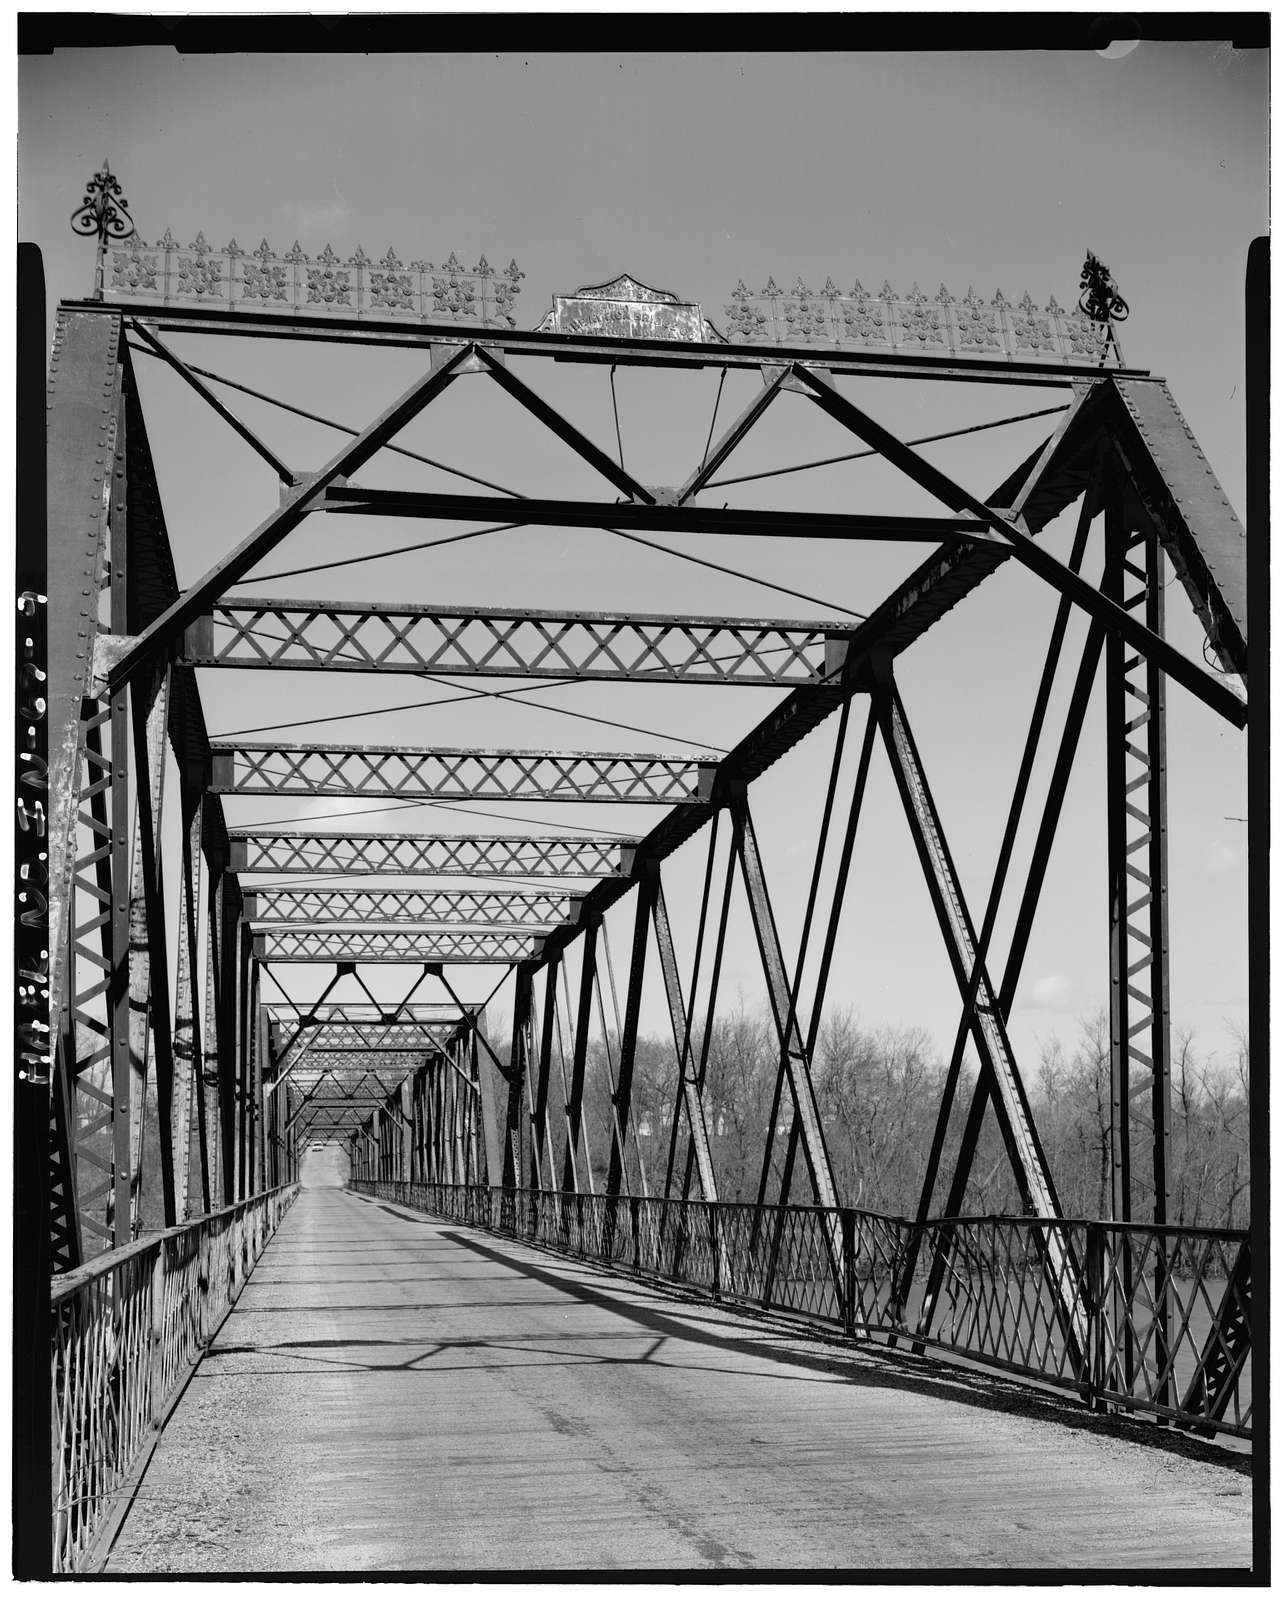 Riverside-Independence Bridge, Spanning Wabash River at County Road 500, Riverside, Fountain County, IN